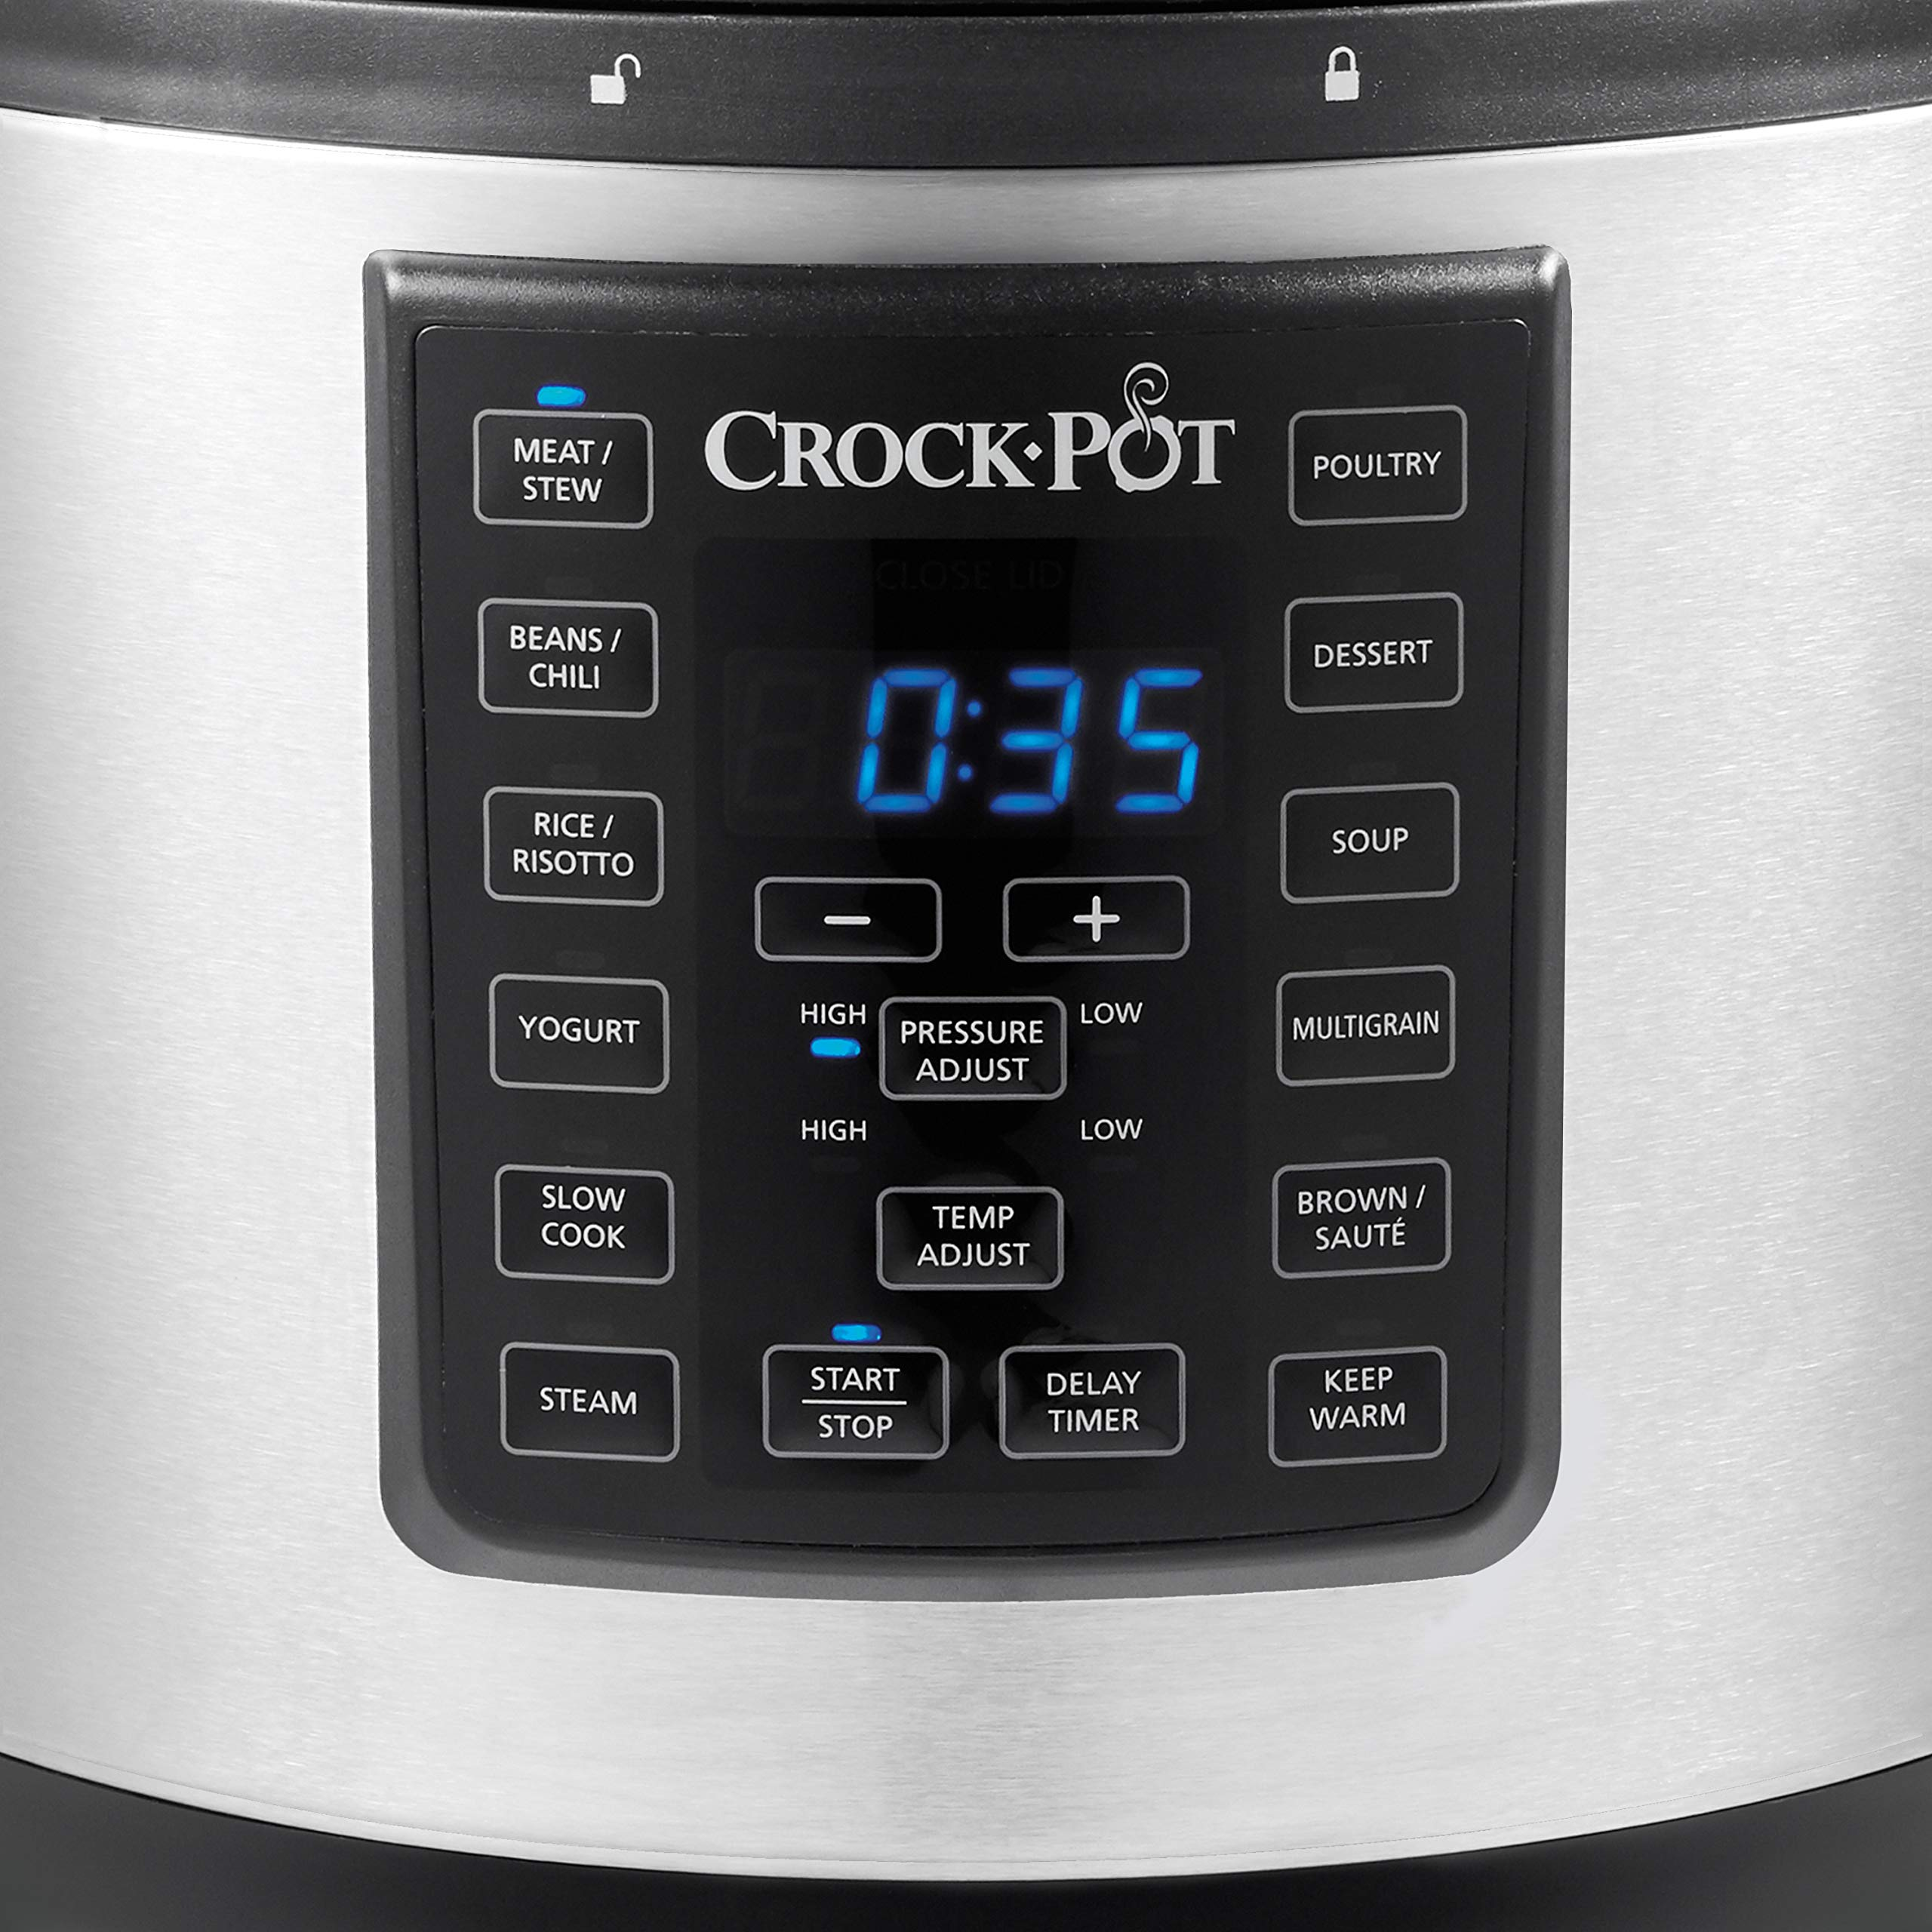 Crock-Pot 6 Qt 8-in-1 Multi-Use Express Crock Programmable Slow Cooker, Pressure Cooker, Sauté, and Steamer, Stainless Steel (SCCPPC600-V1) by Crock-Pot (Image #4)